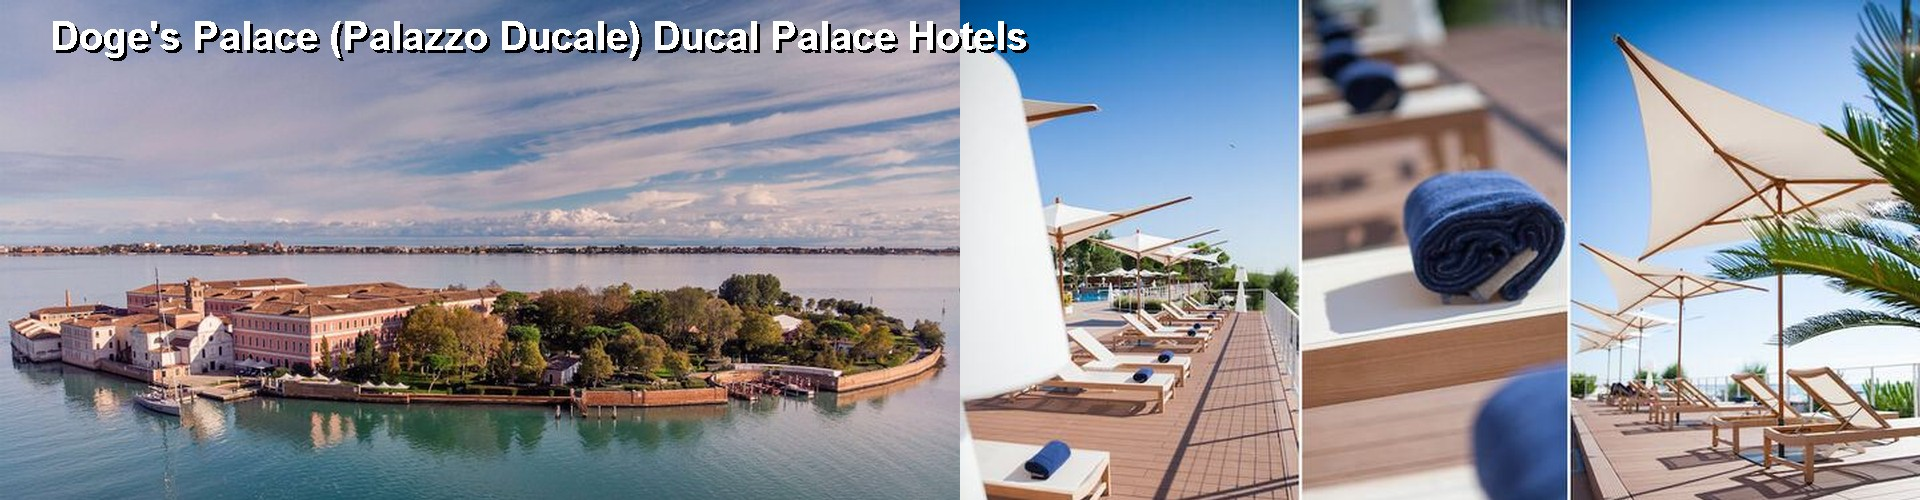 5 Best Hotels near Doge's Palace (Palazzo Ducale) Ducal Palace